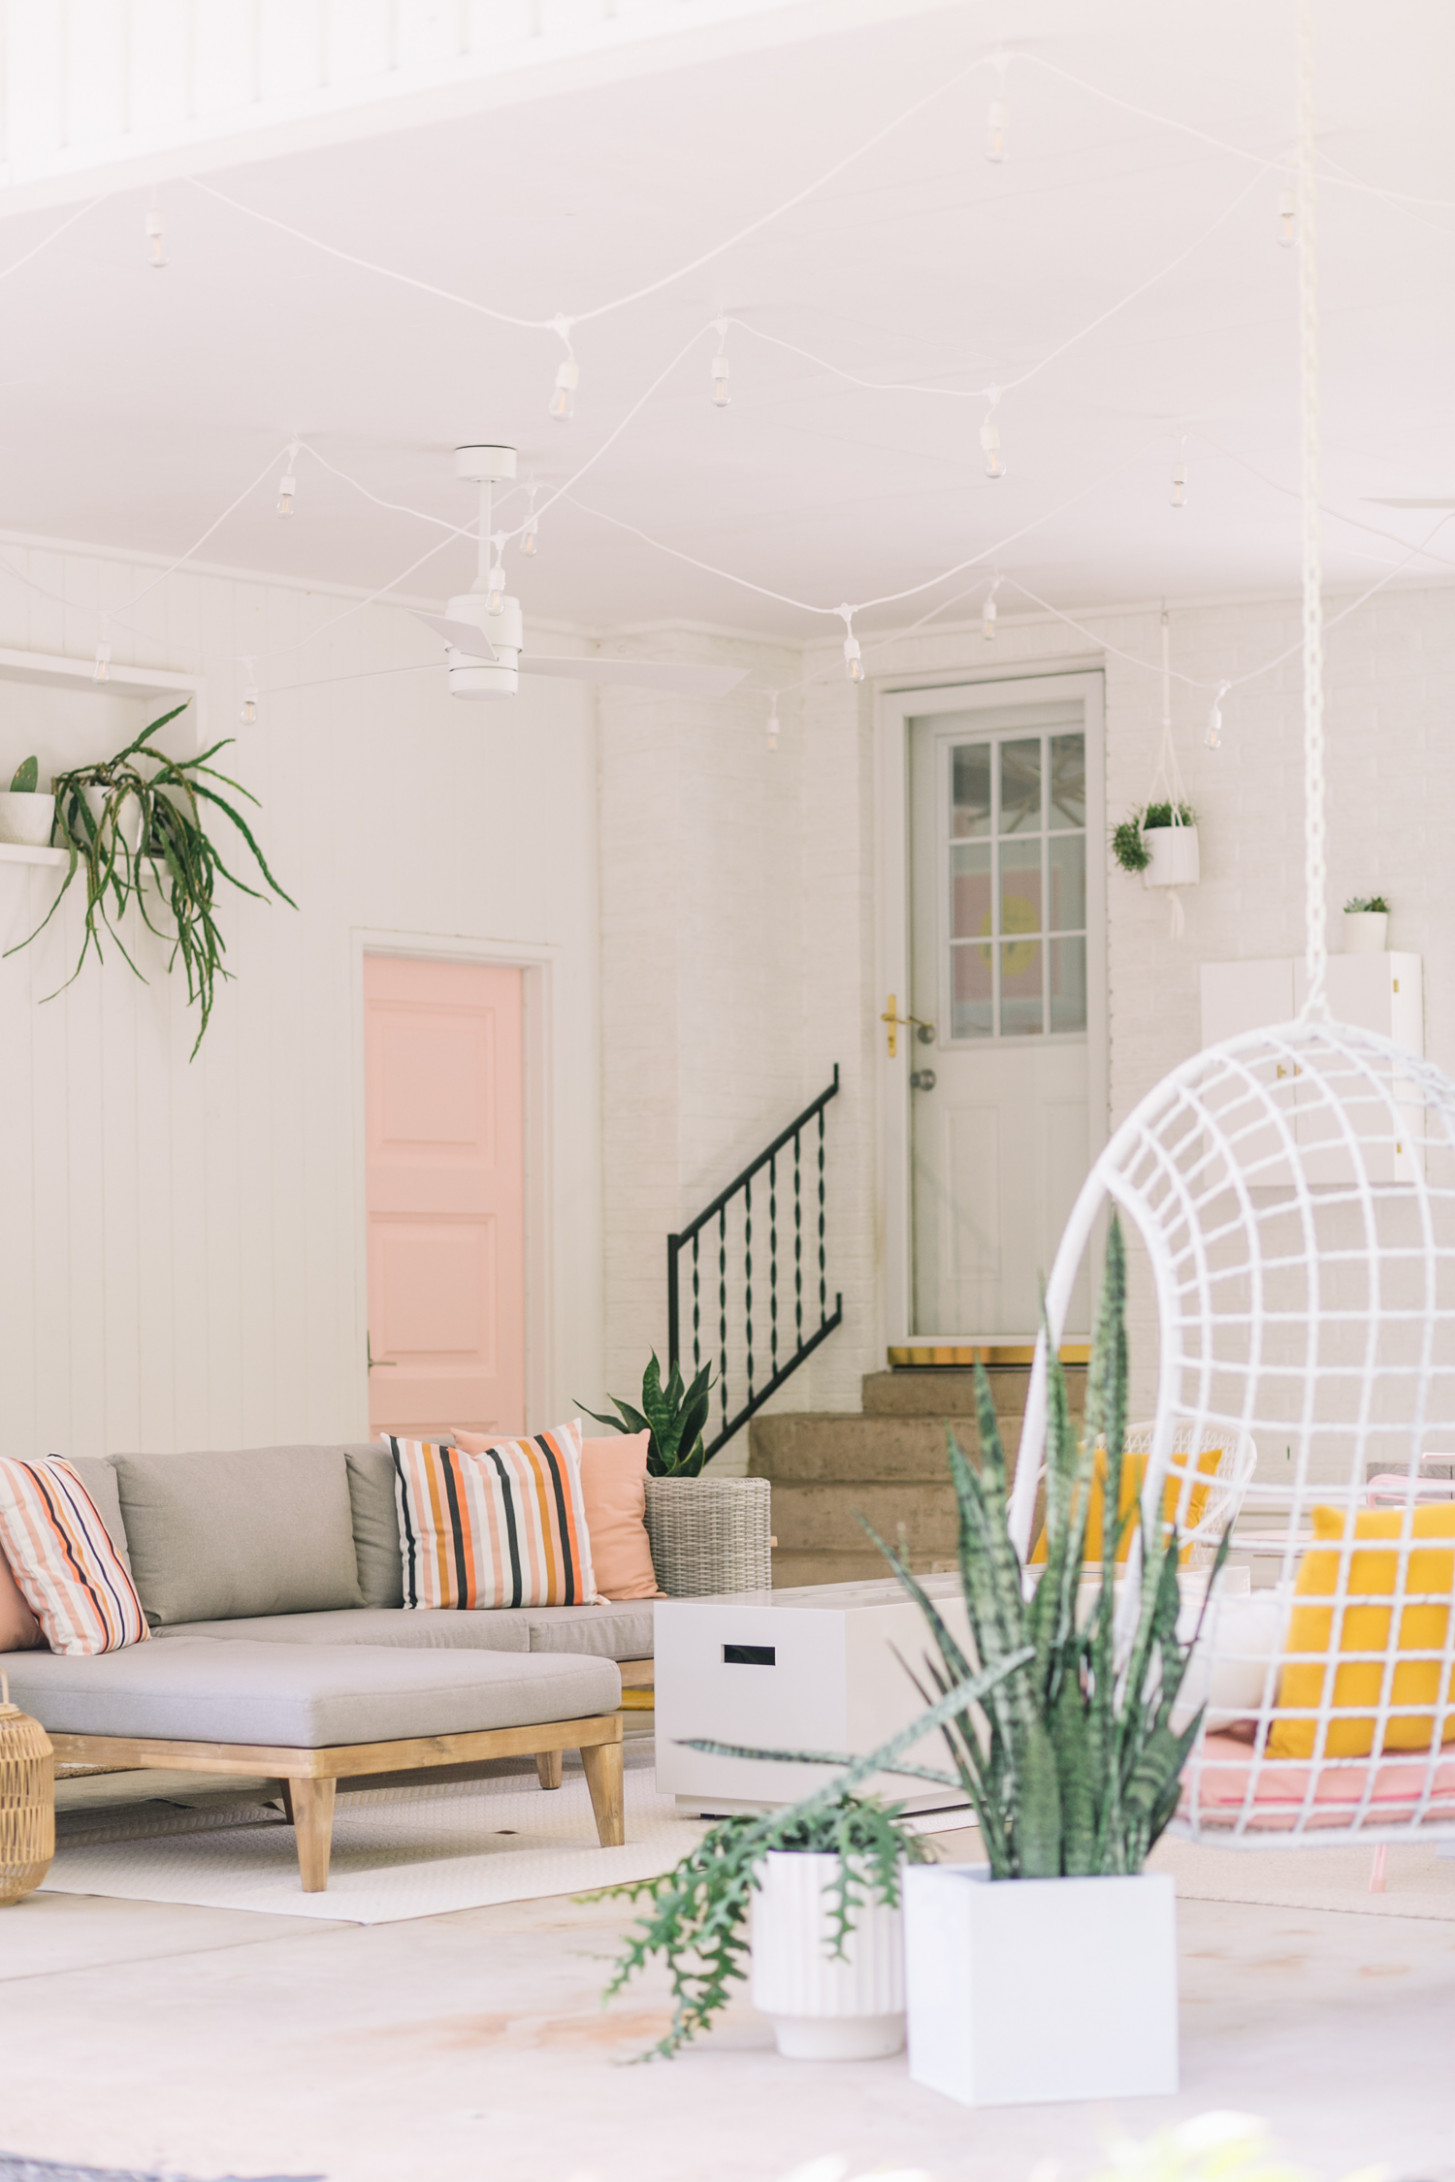 How I Turned My Carport Into An Outdoor Porch Before Carport Decorating Online.jpg